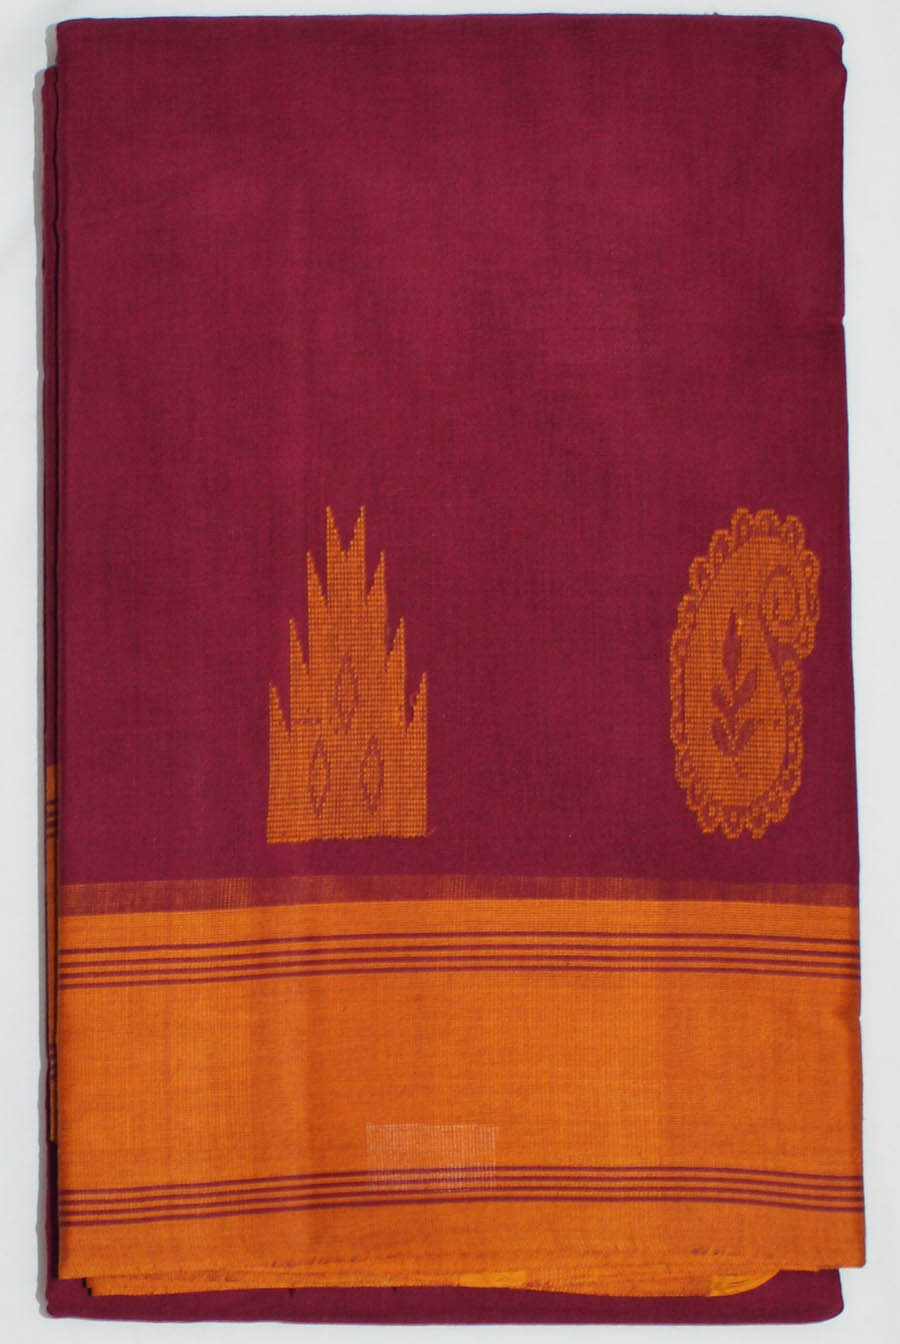 Kanchi Cotton 3709